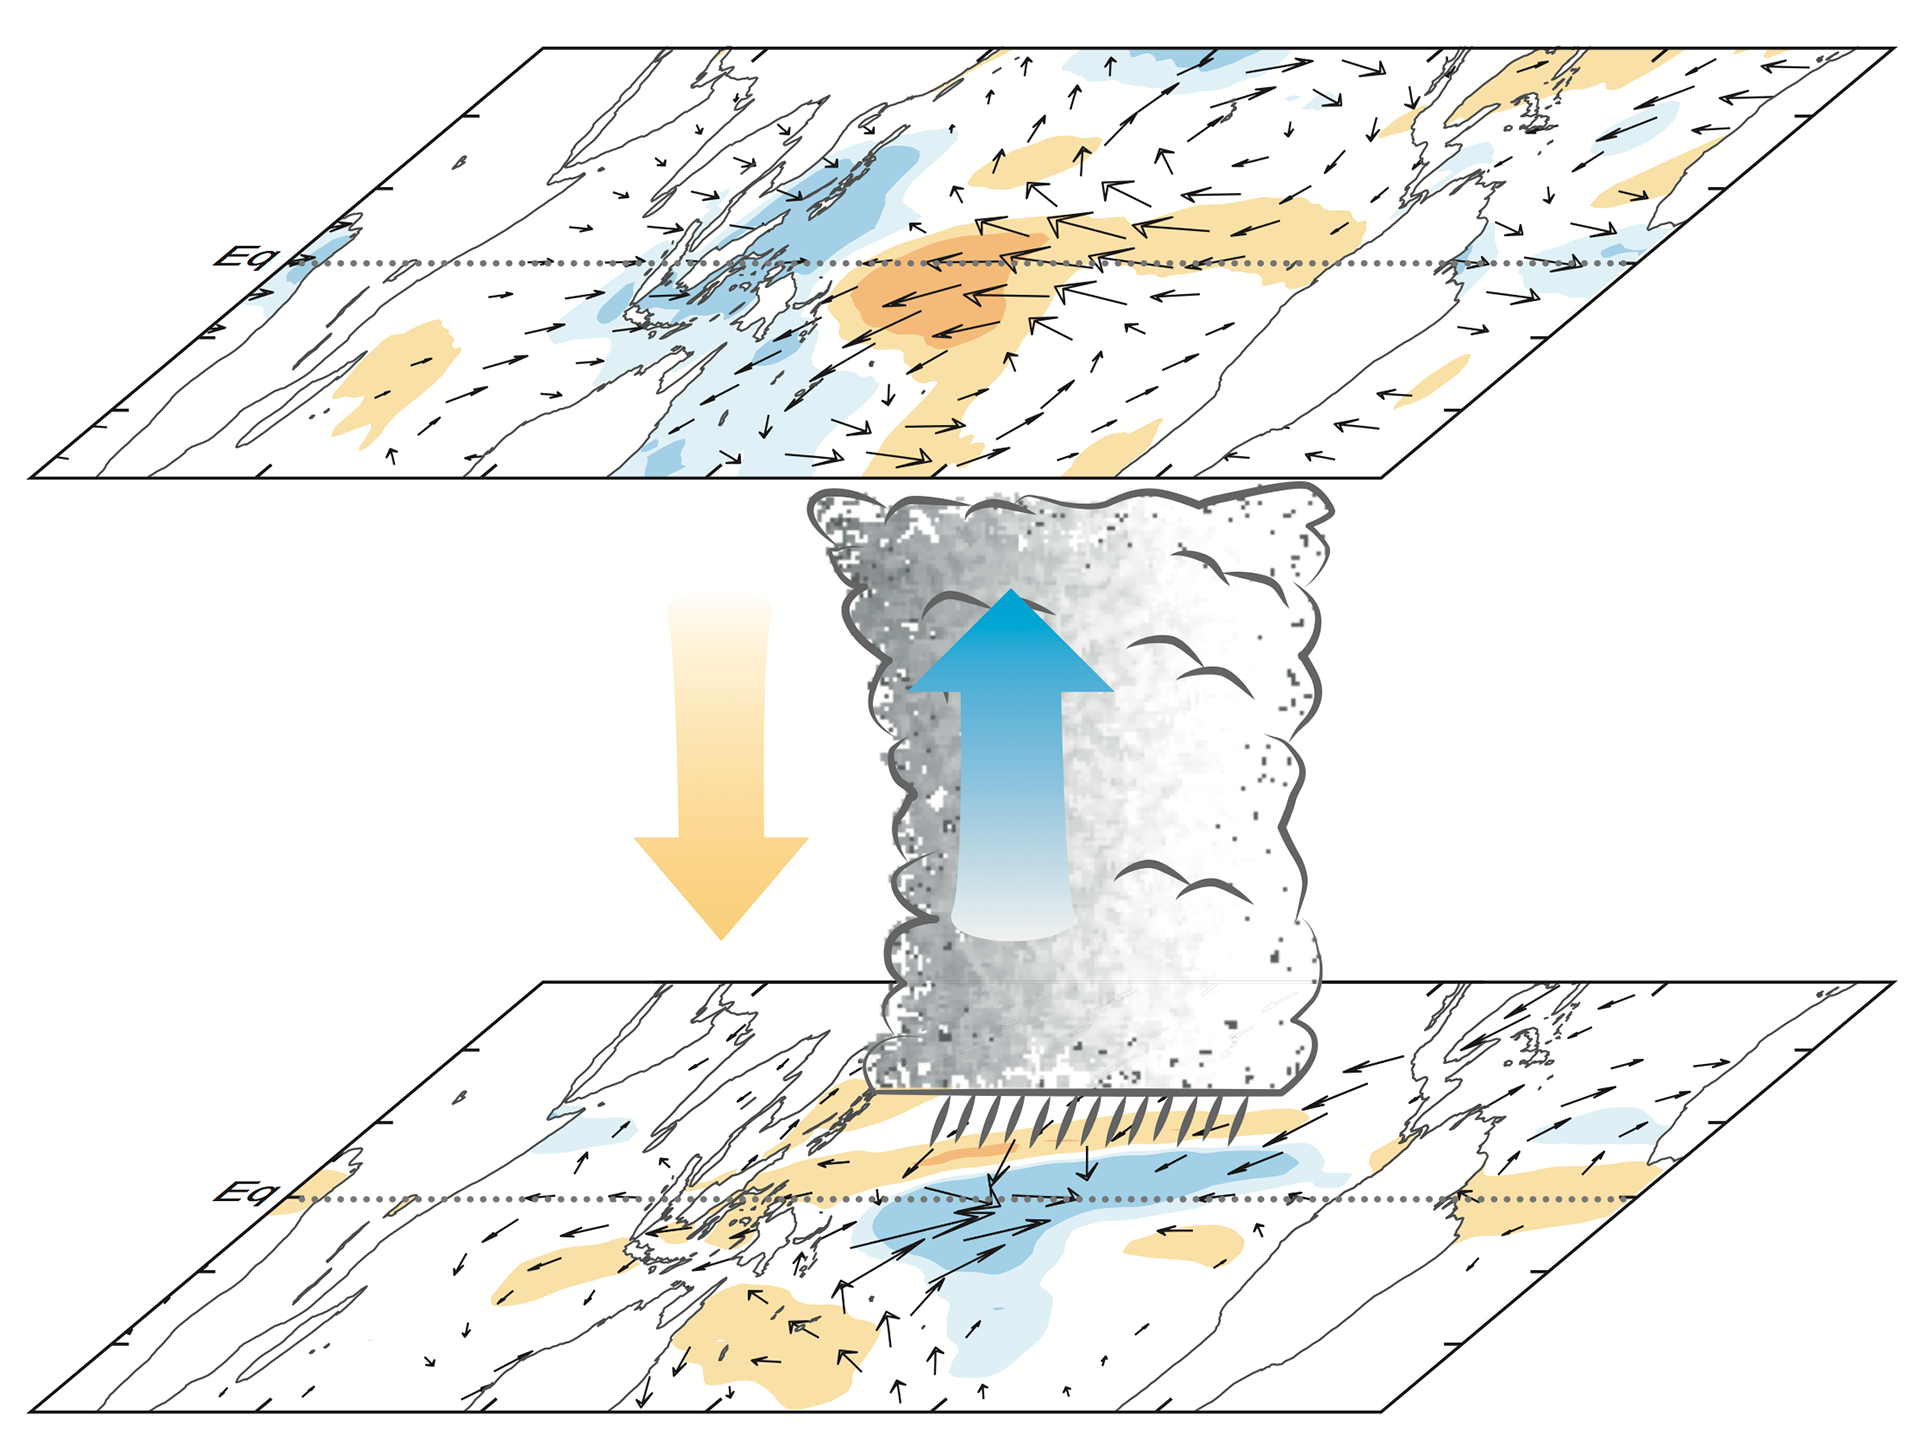 Schematic describing the upper and lower tropospheric structure of ENSO.